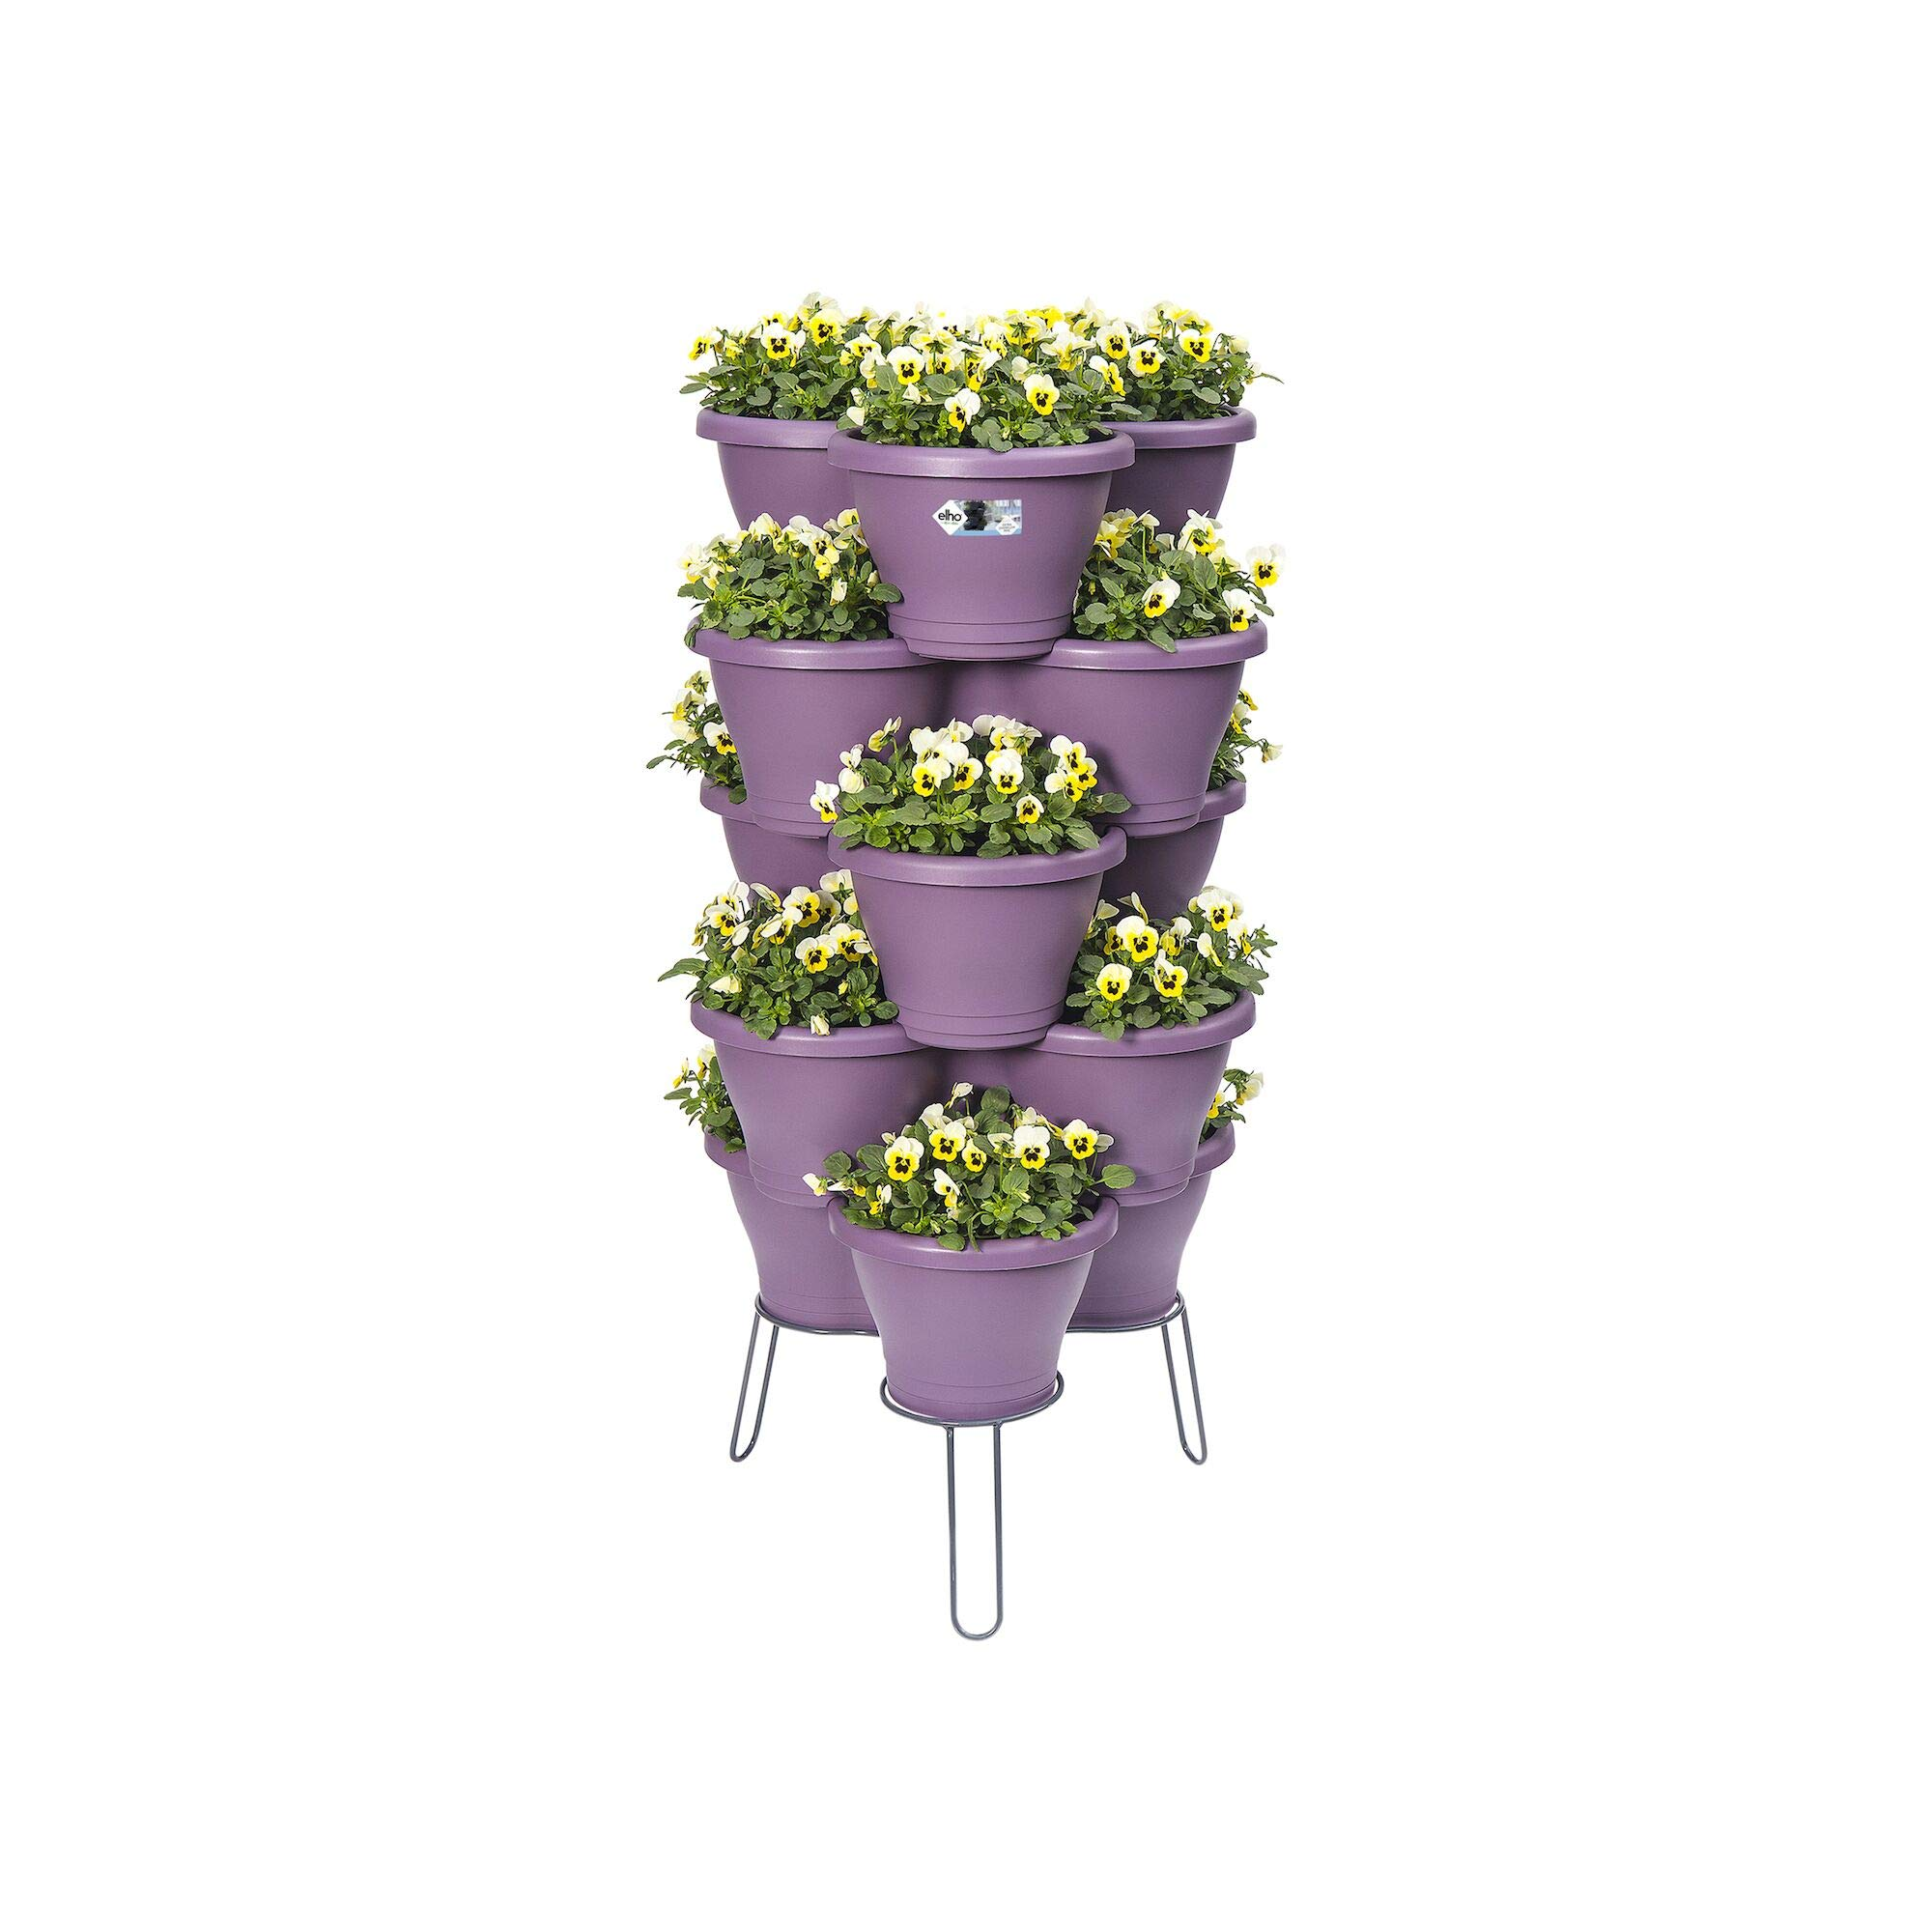 Elho Corsica Vertical Garden Standard M Flower Pot, Anthracite, Made with Recycled Materials